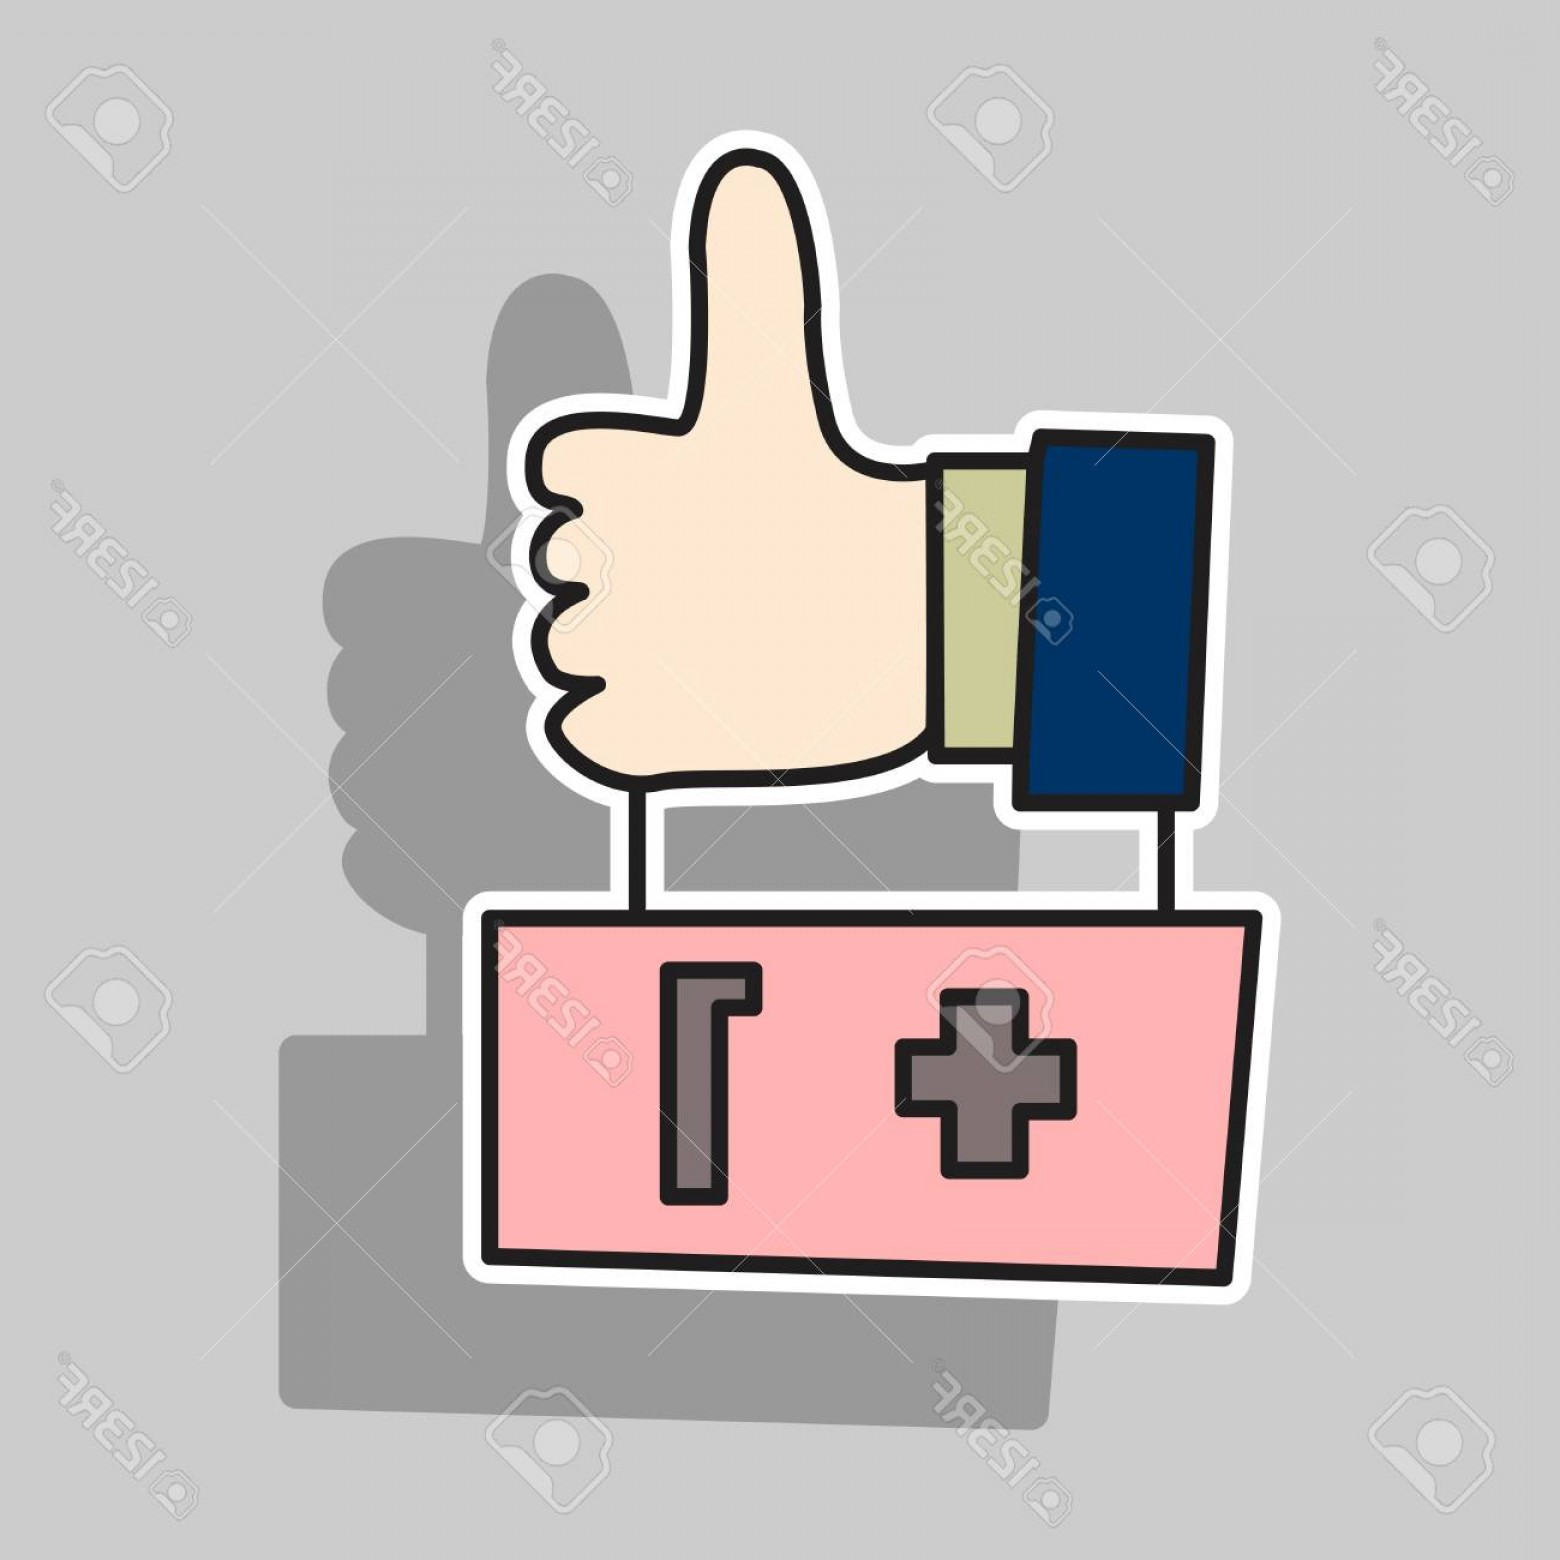 Finger Facebook Vector: Photostock Vector Sticker Thumbs Up Like Social Network Facebook Etc Icon New Appreciation Number Symbol Idea Blogging